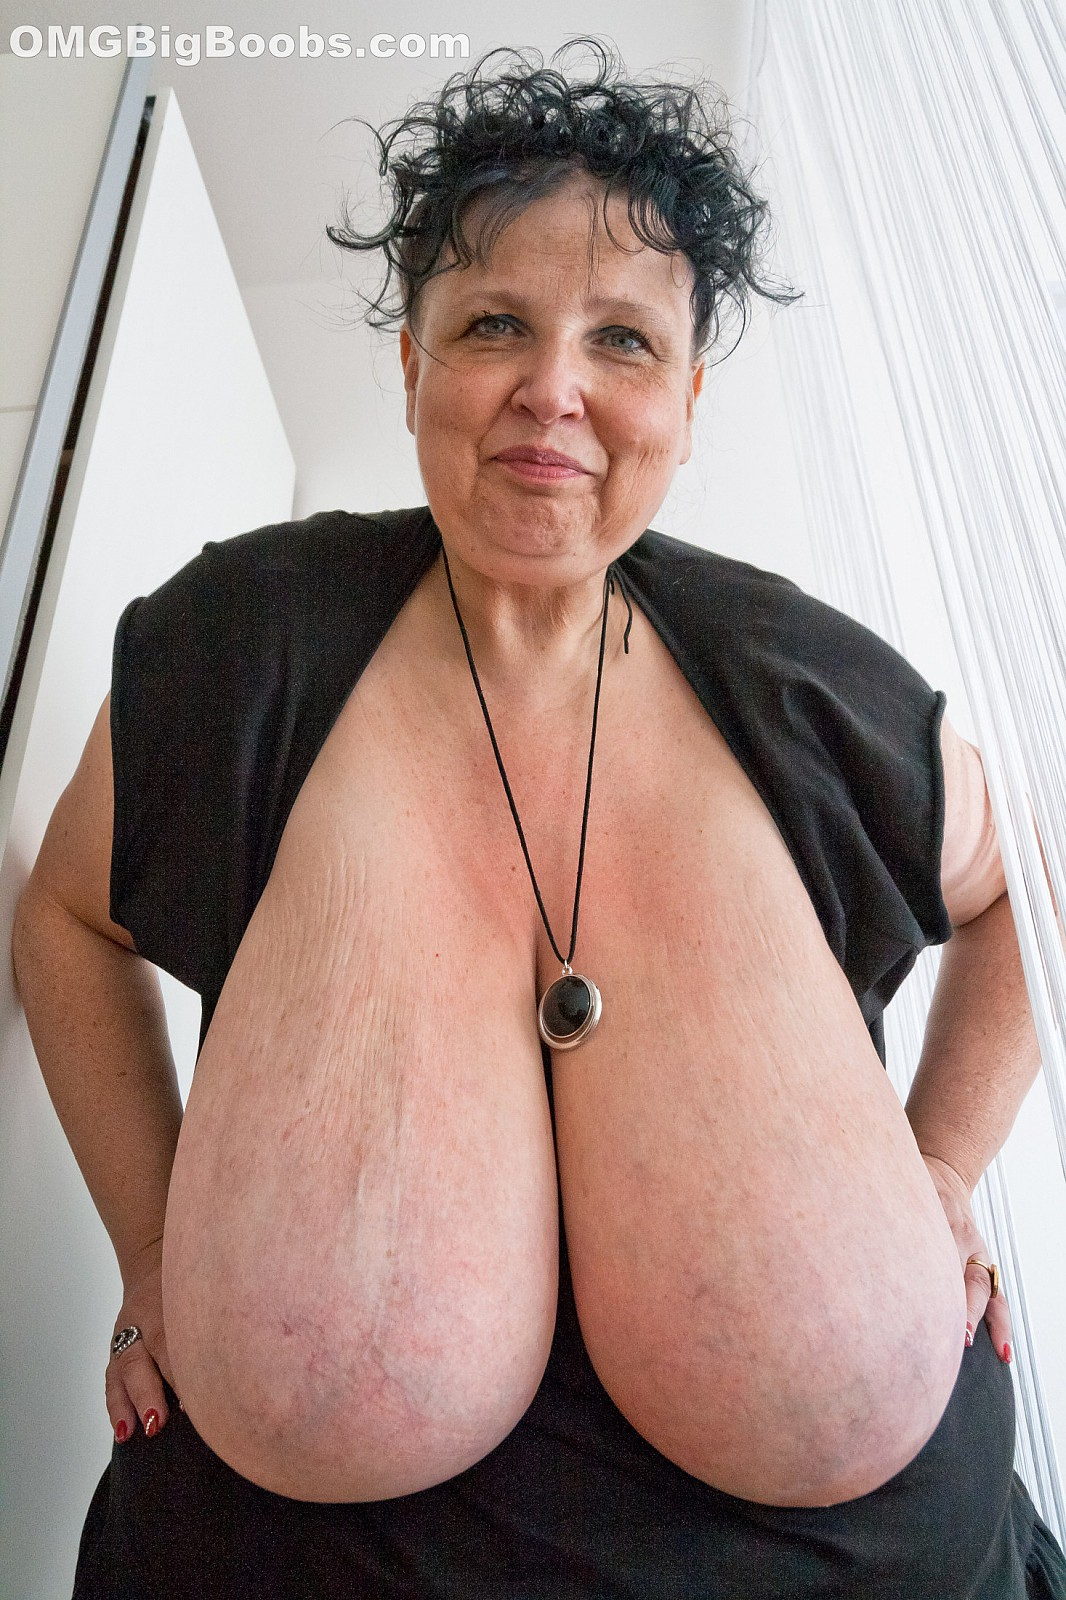 Chest old woman porn sites breast big